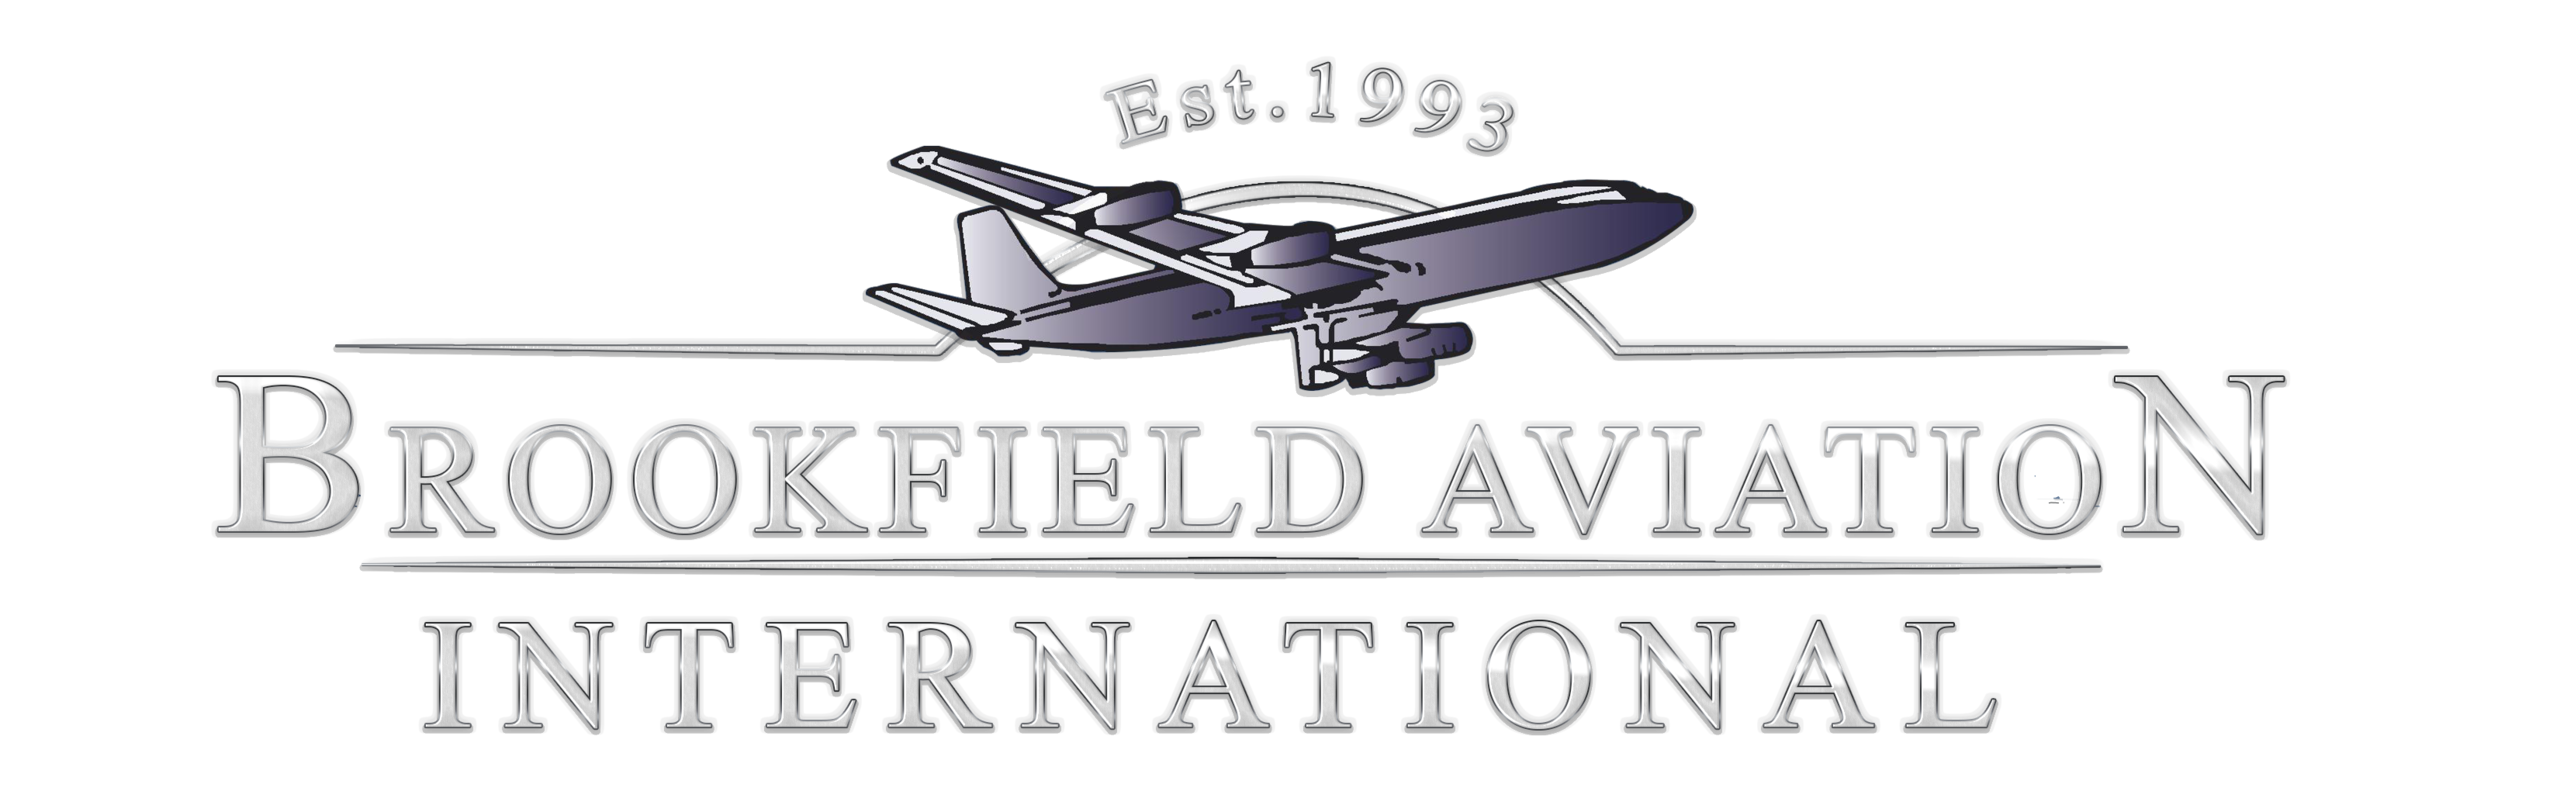 Brookfield Aviation logo when clicked takes you to Brookfield Aviation Website